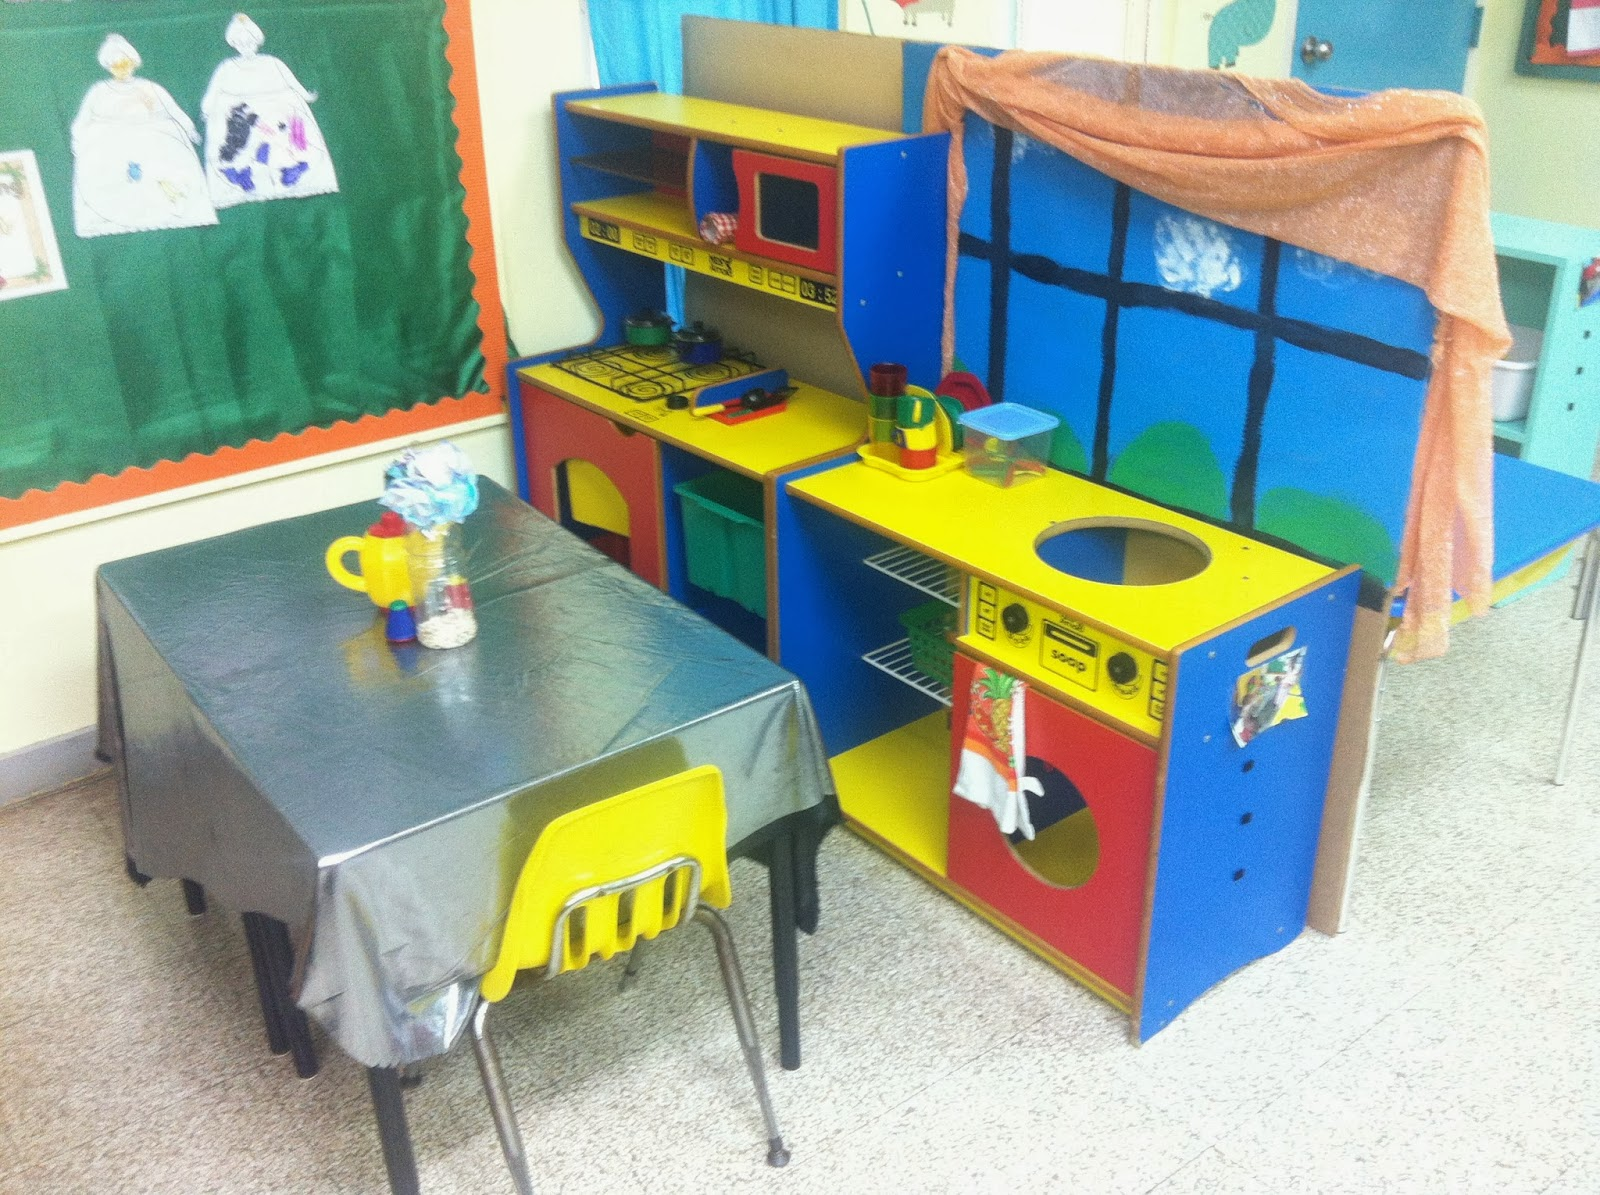 Classroom environment sjacps reception - Kitchen and dining area design crossword ...